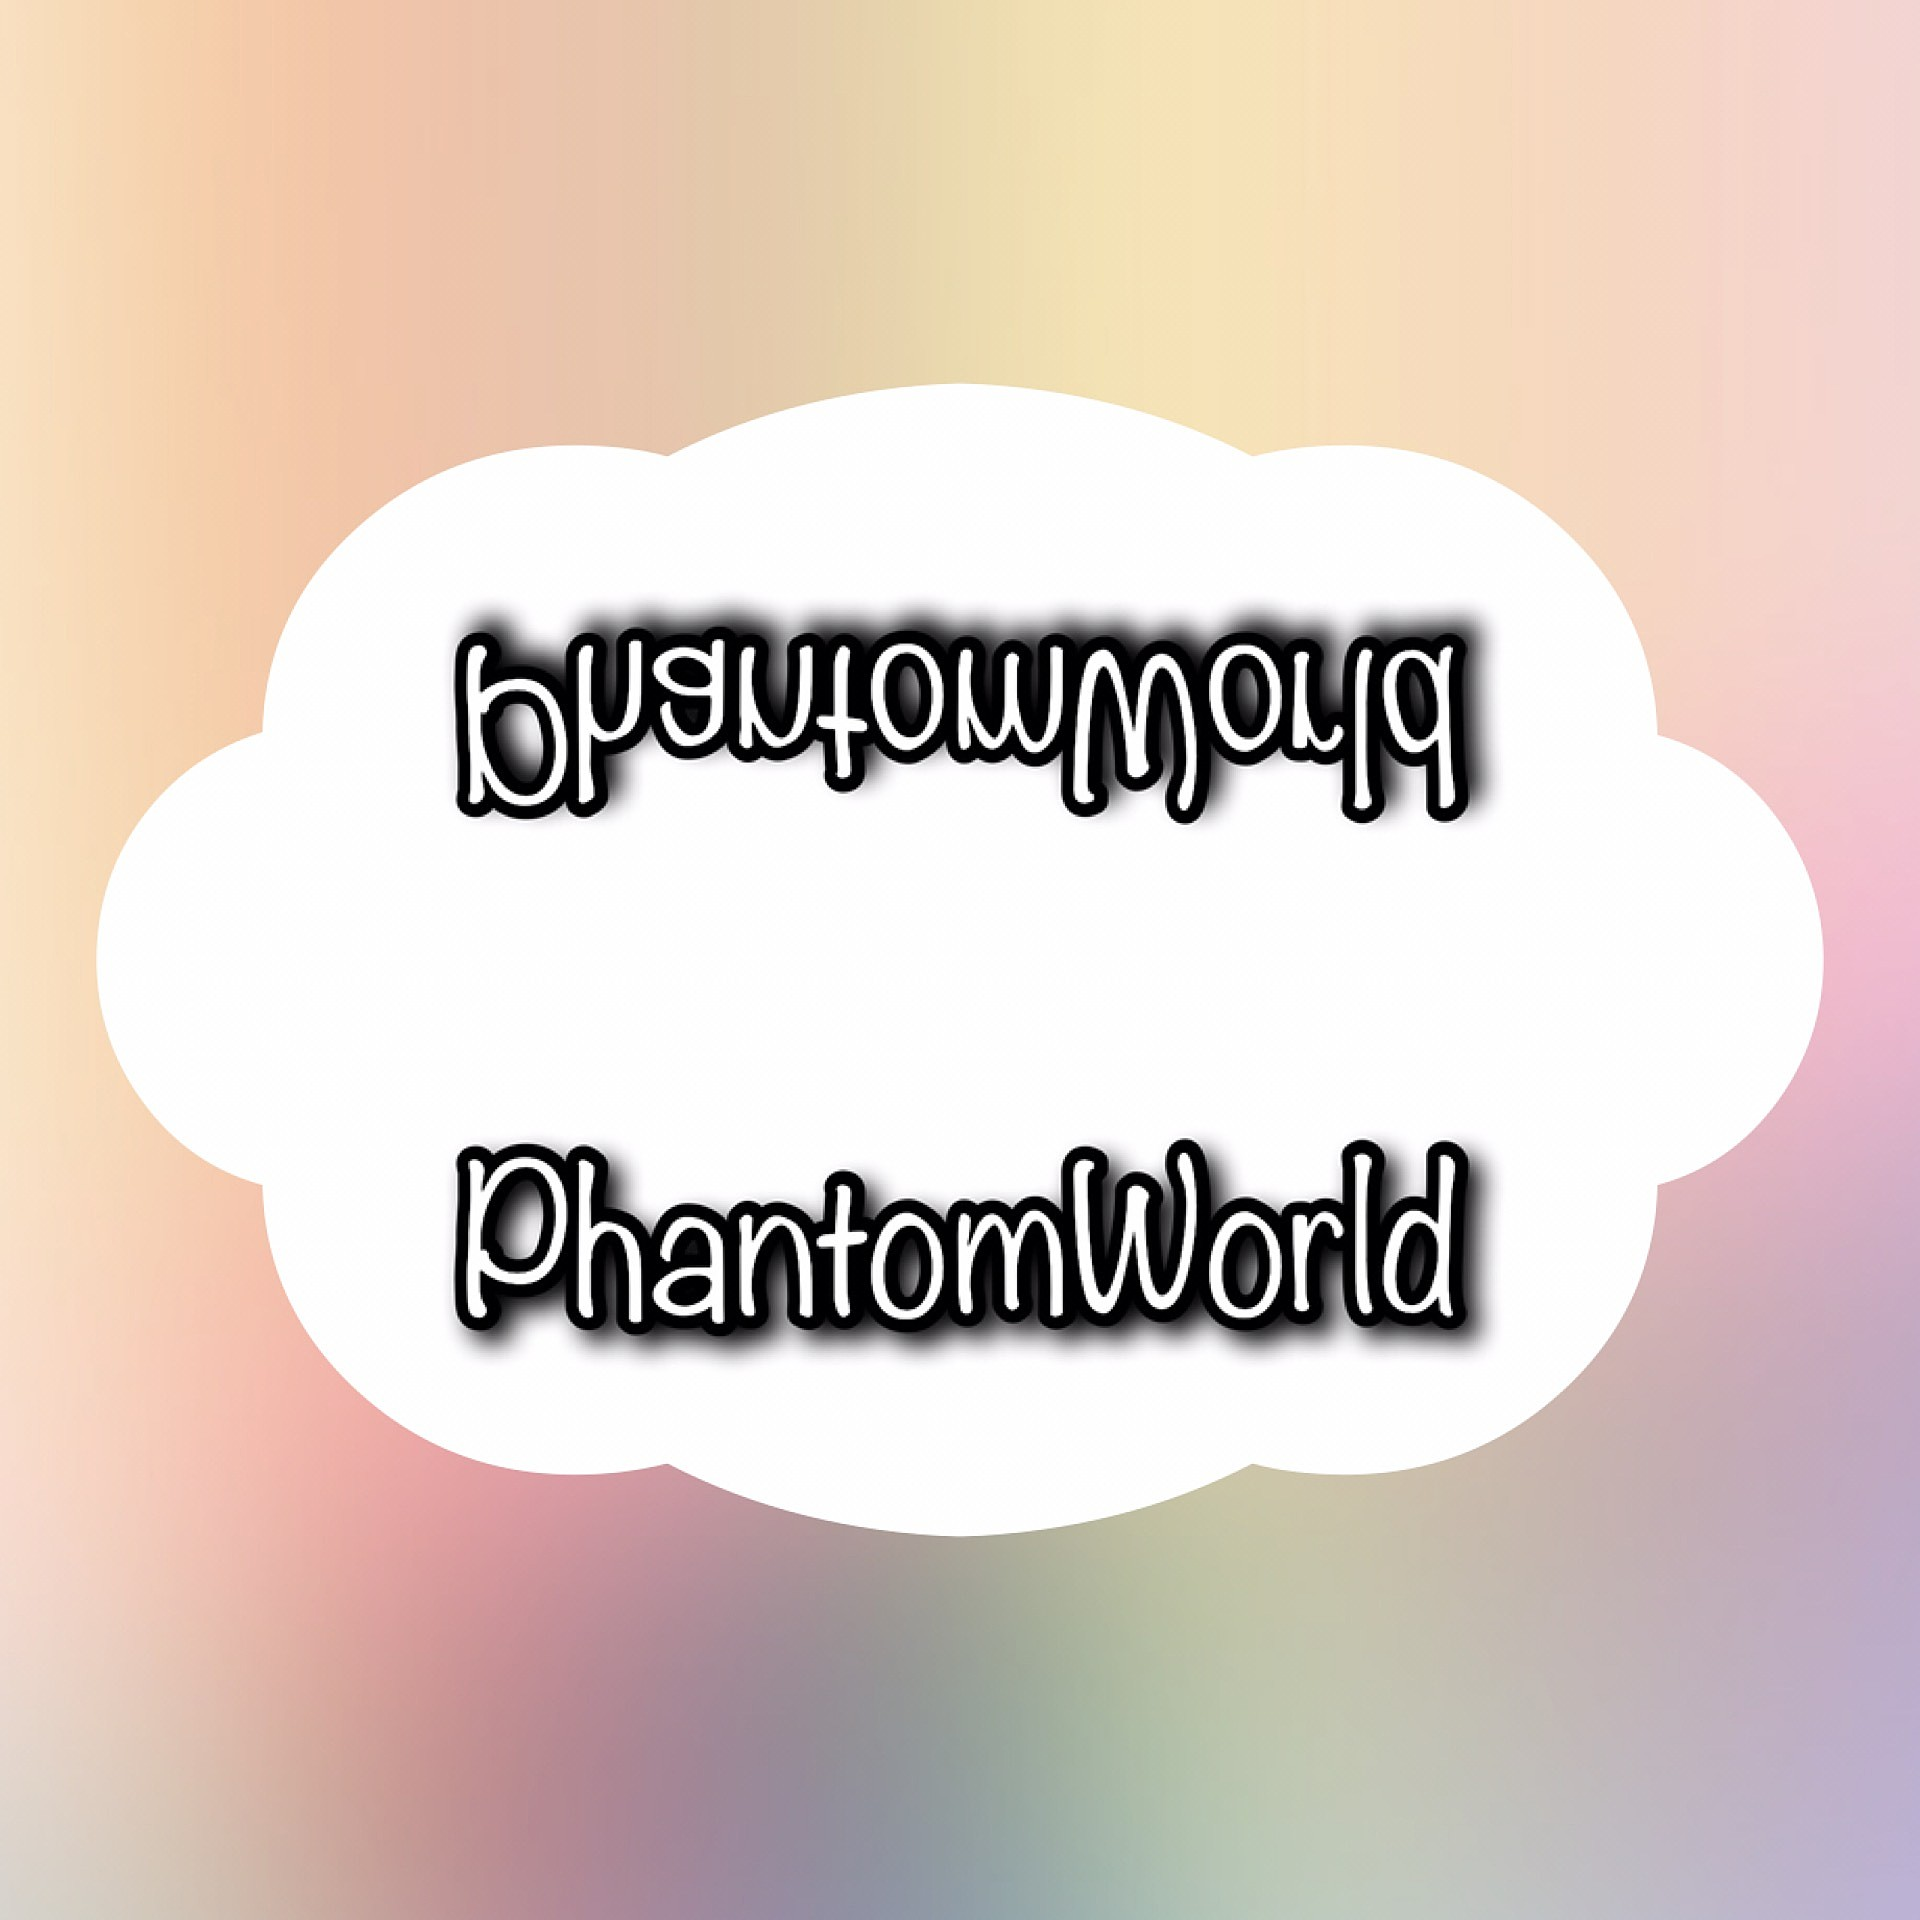 Phantom World